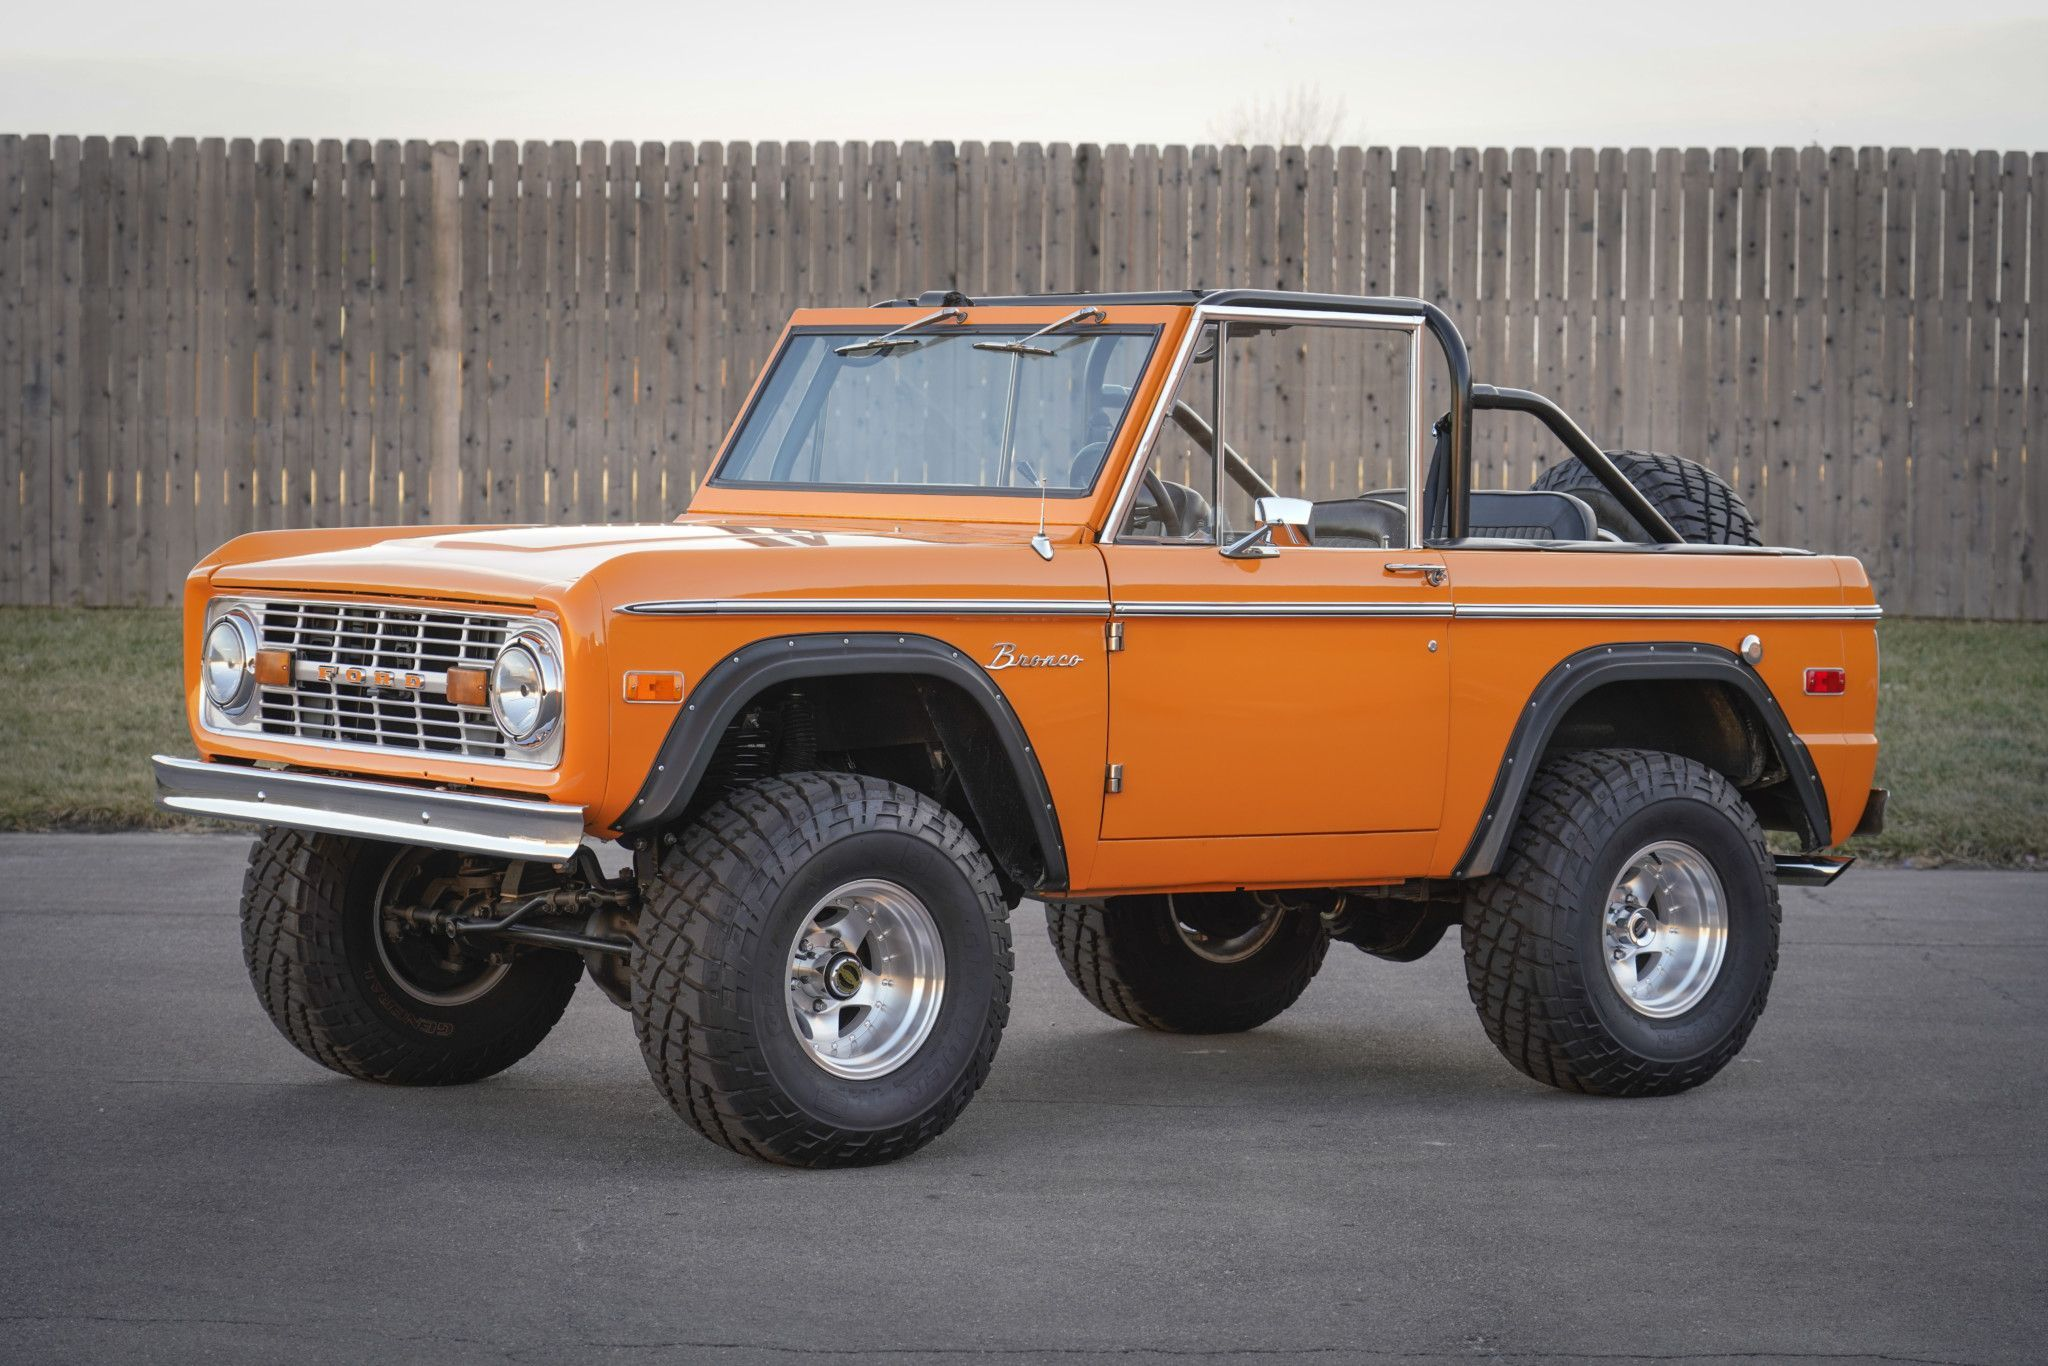 Dang I Honestly Prefer This Paint Color For This Keyword 1992f150 Ford Bronco Classic Trucks Ford Trucks